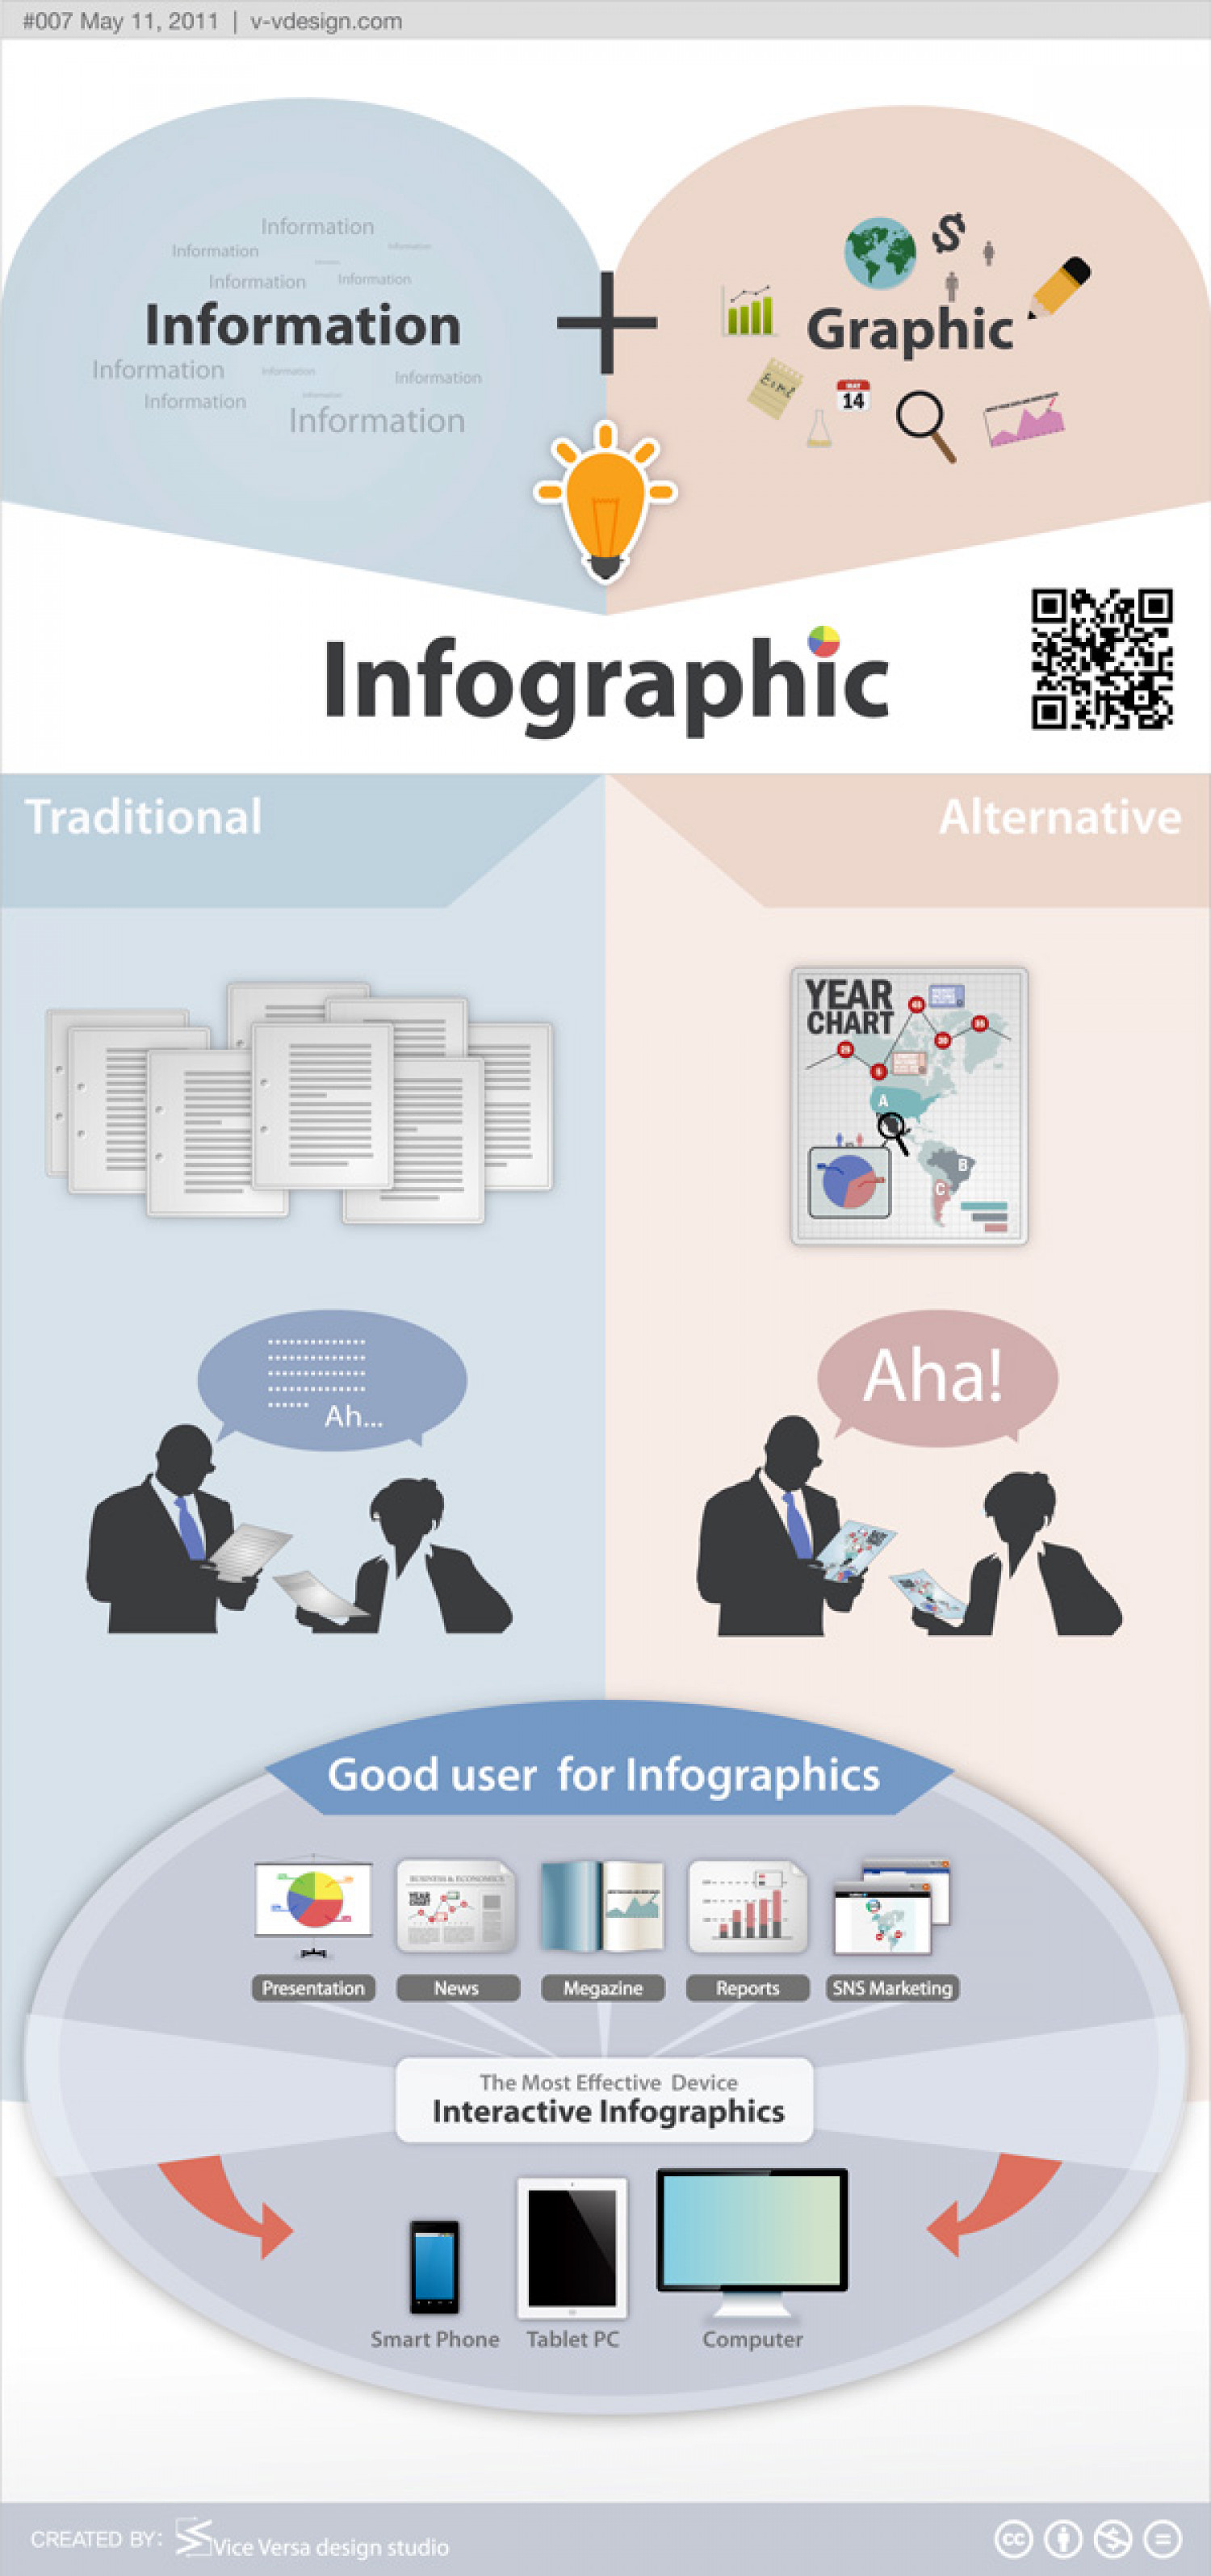 About Infographics Infographic